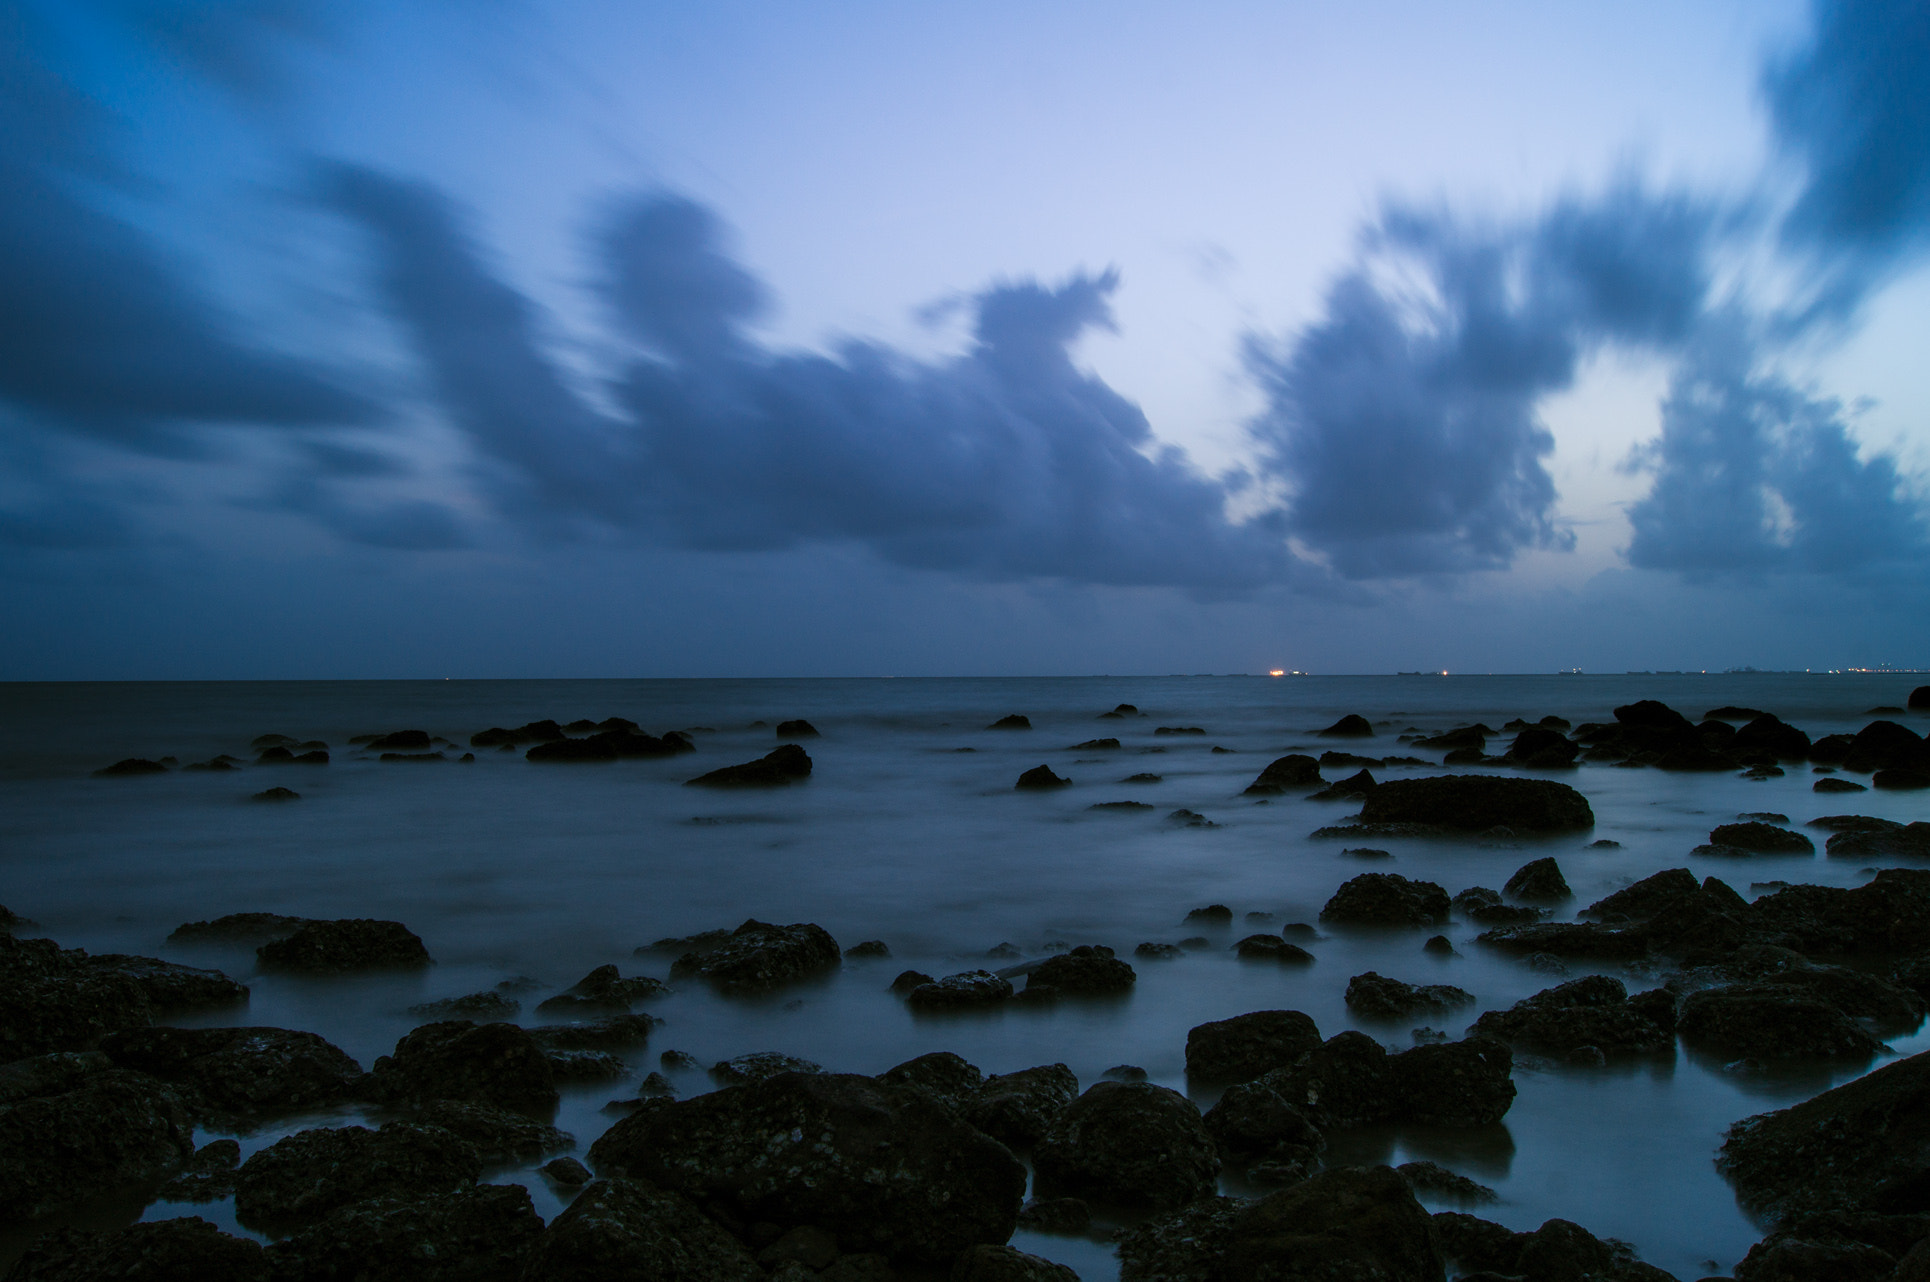 Photograph Sea & Sky by Aniket Goswami on 500px